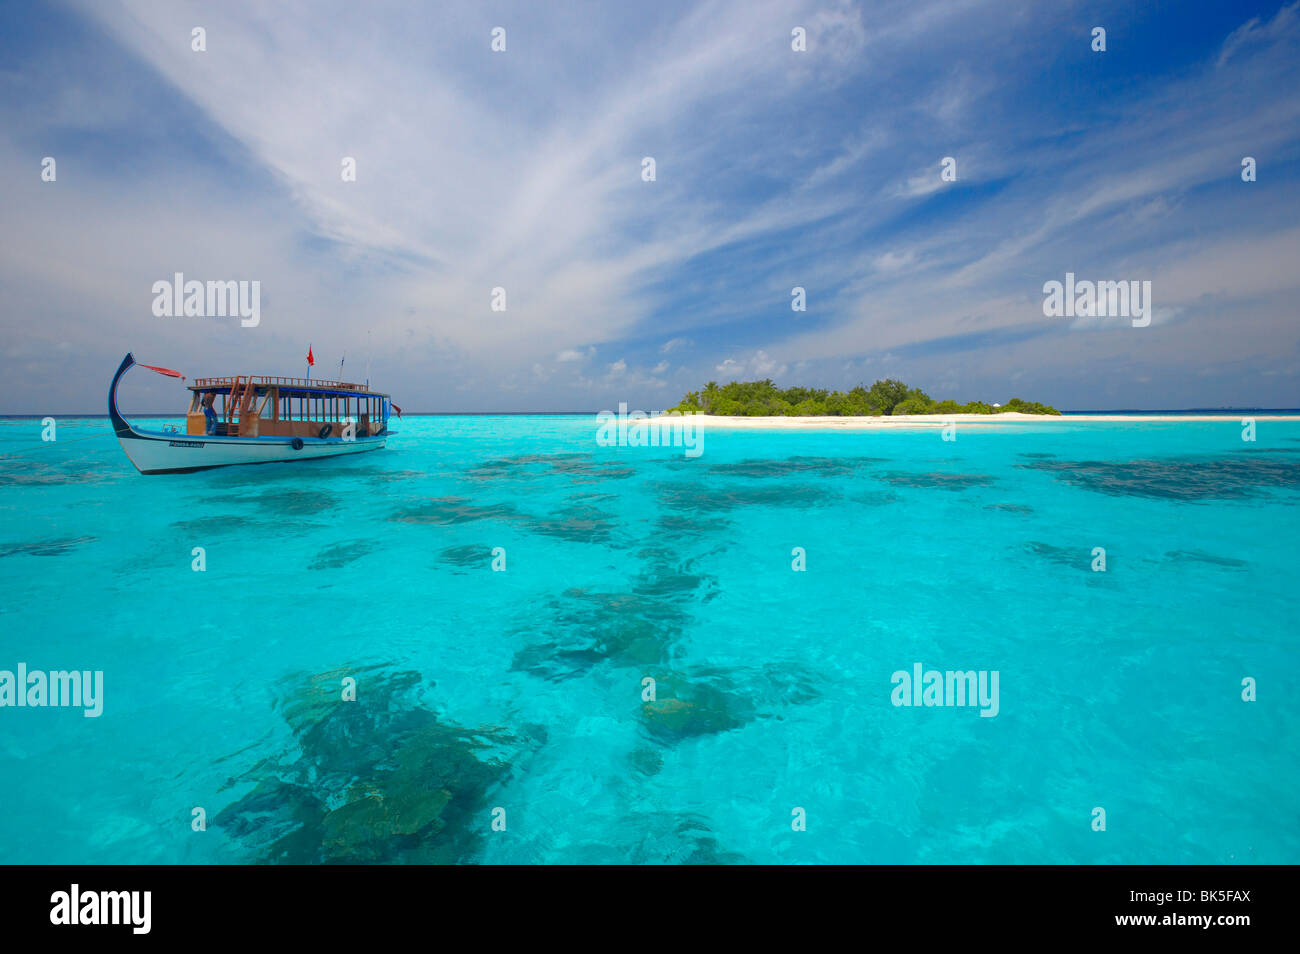 Dhoni and deserted island, Maldives, Indian Ocean, Asia - Stock Image